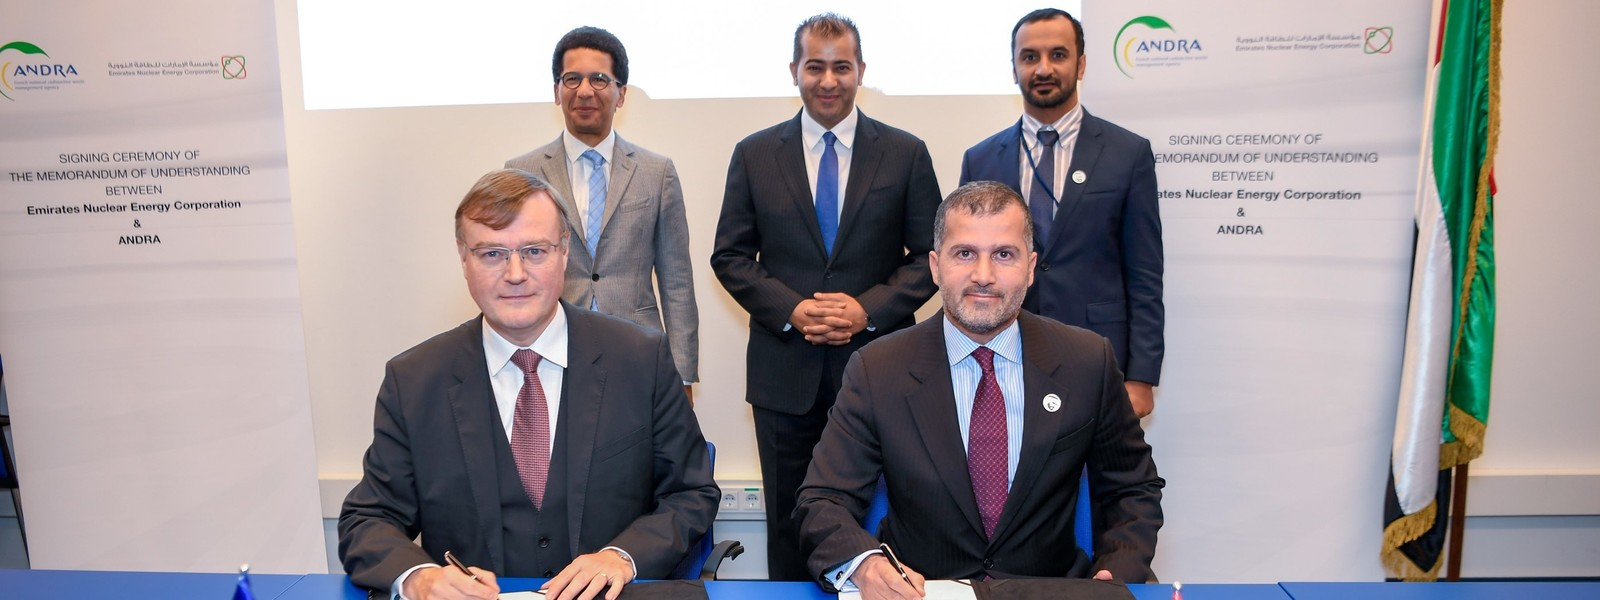 enec-andra-mou-signing-5d88a89e1f726.jpg (Gallery Image)